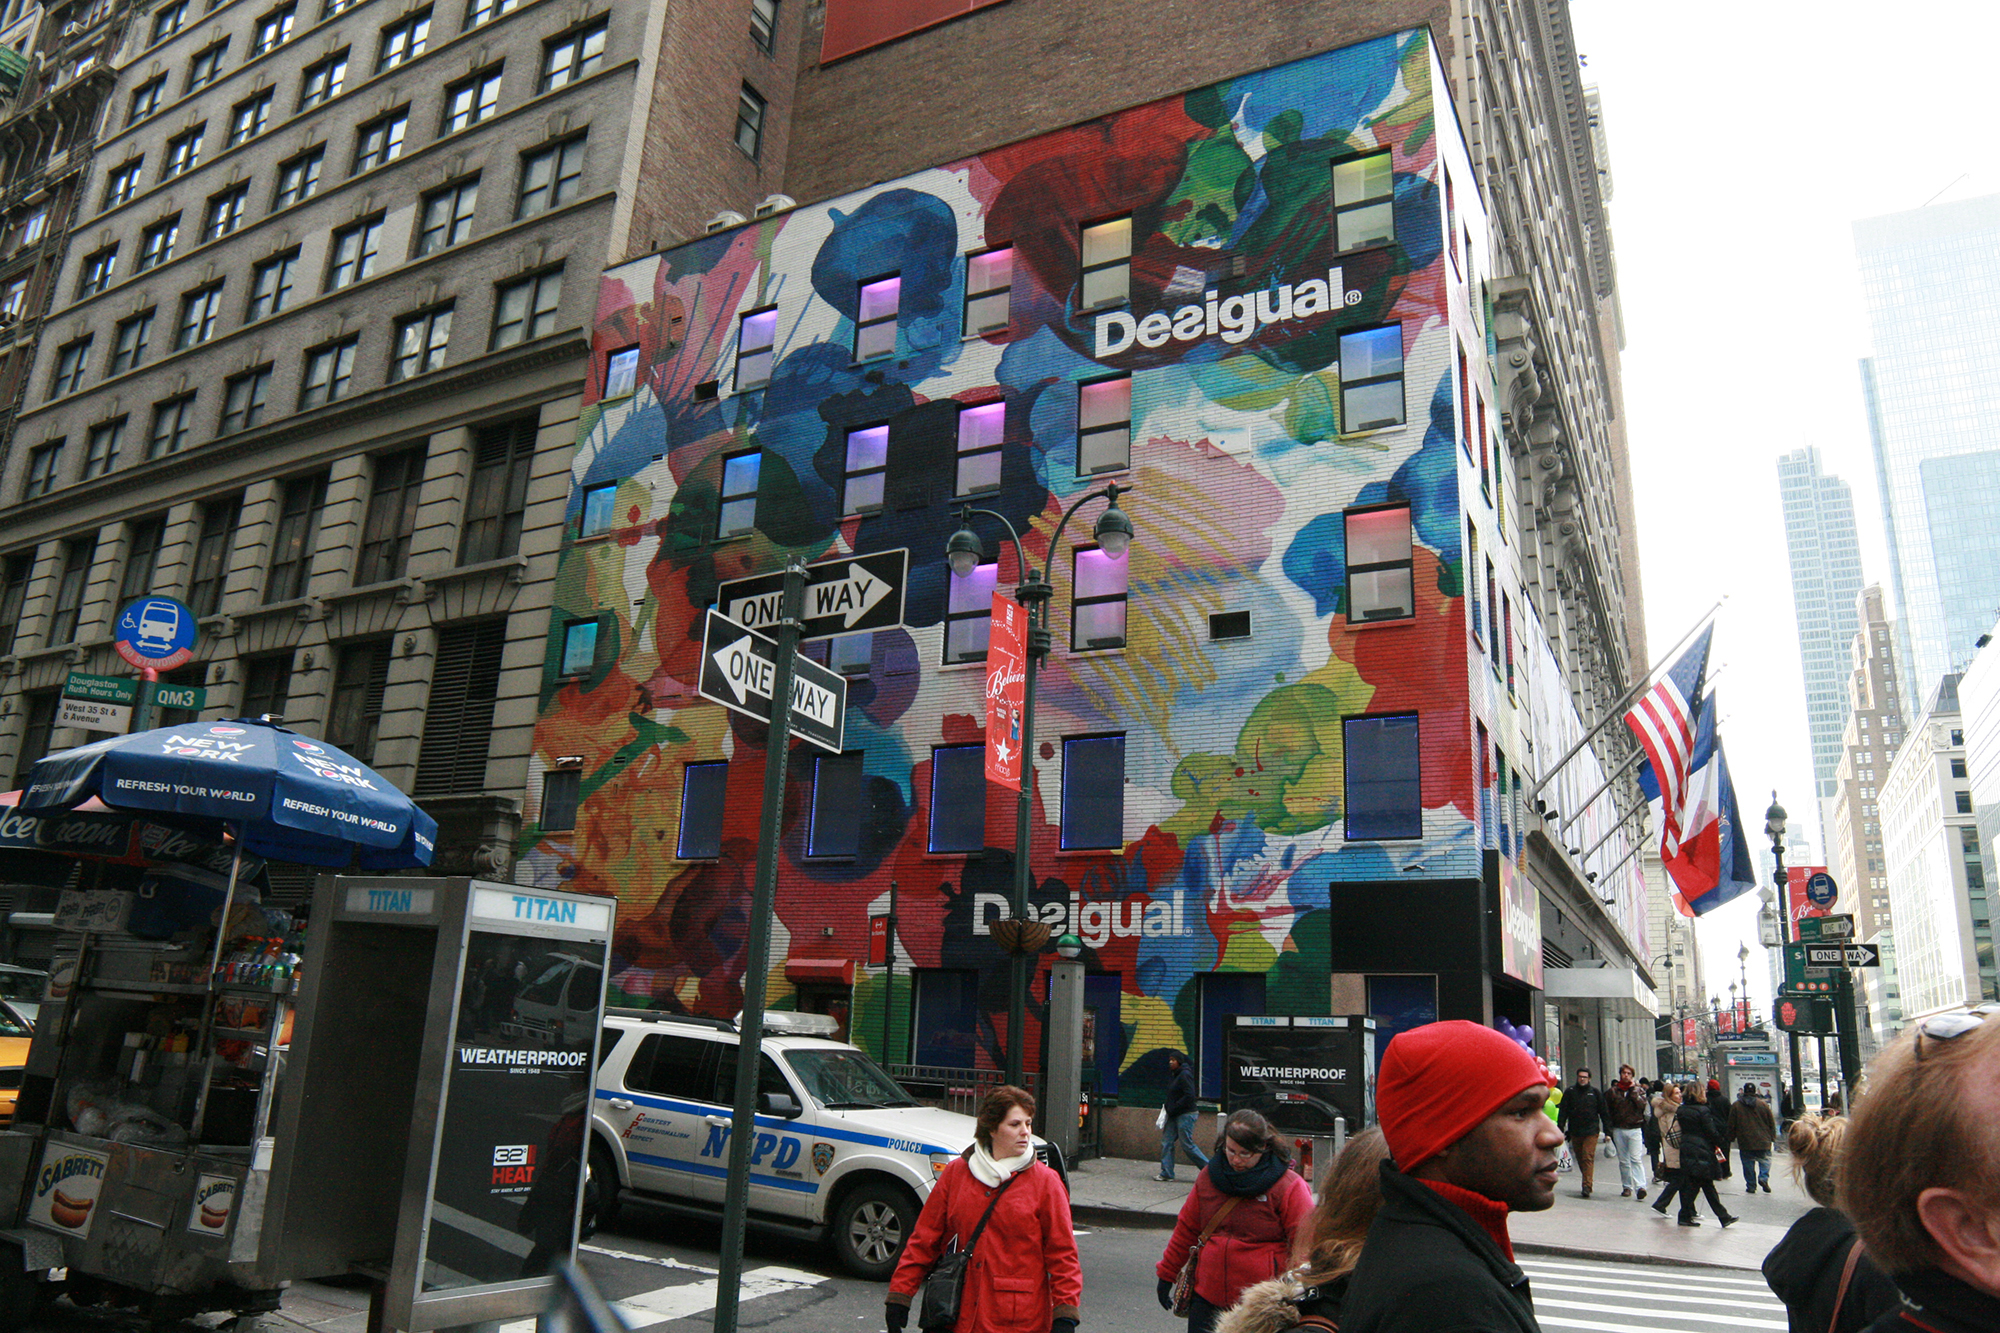 Boutique Desigual New York - 10/12/2011